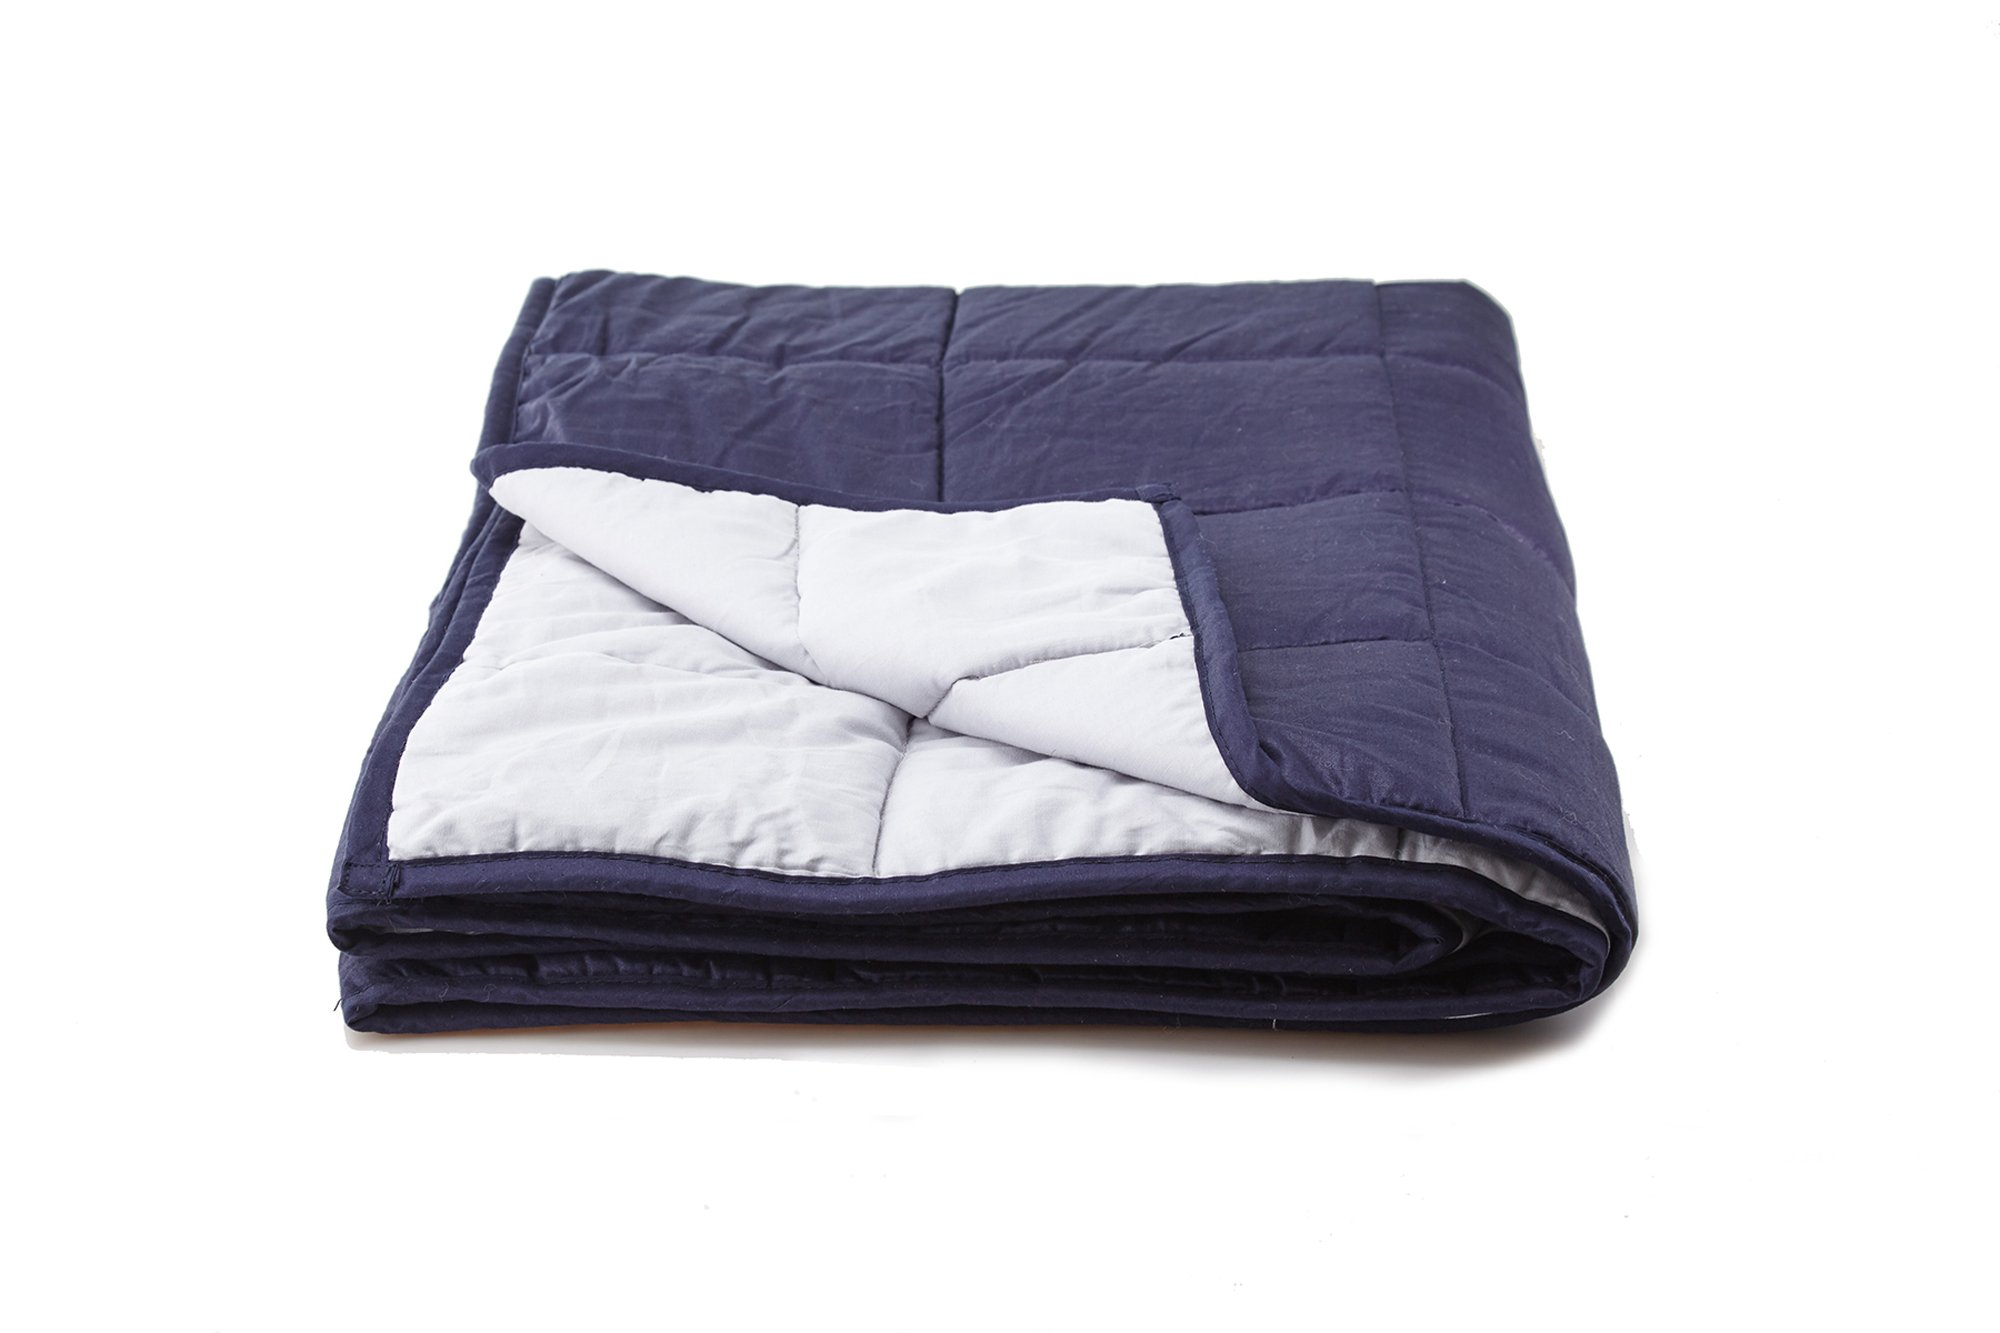 """Weighted Blanket Sensory Solutions for Adults and Kids   Size Large 15 lbs 48"""" X 72"""" Navy Blue   Deep Pressure for Sound Sleep and Natural Stress Relief from Anxiety related to Autism, PTSD, Insomnia by DreamStill (Image #2)"""